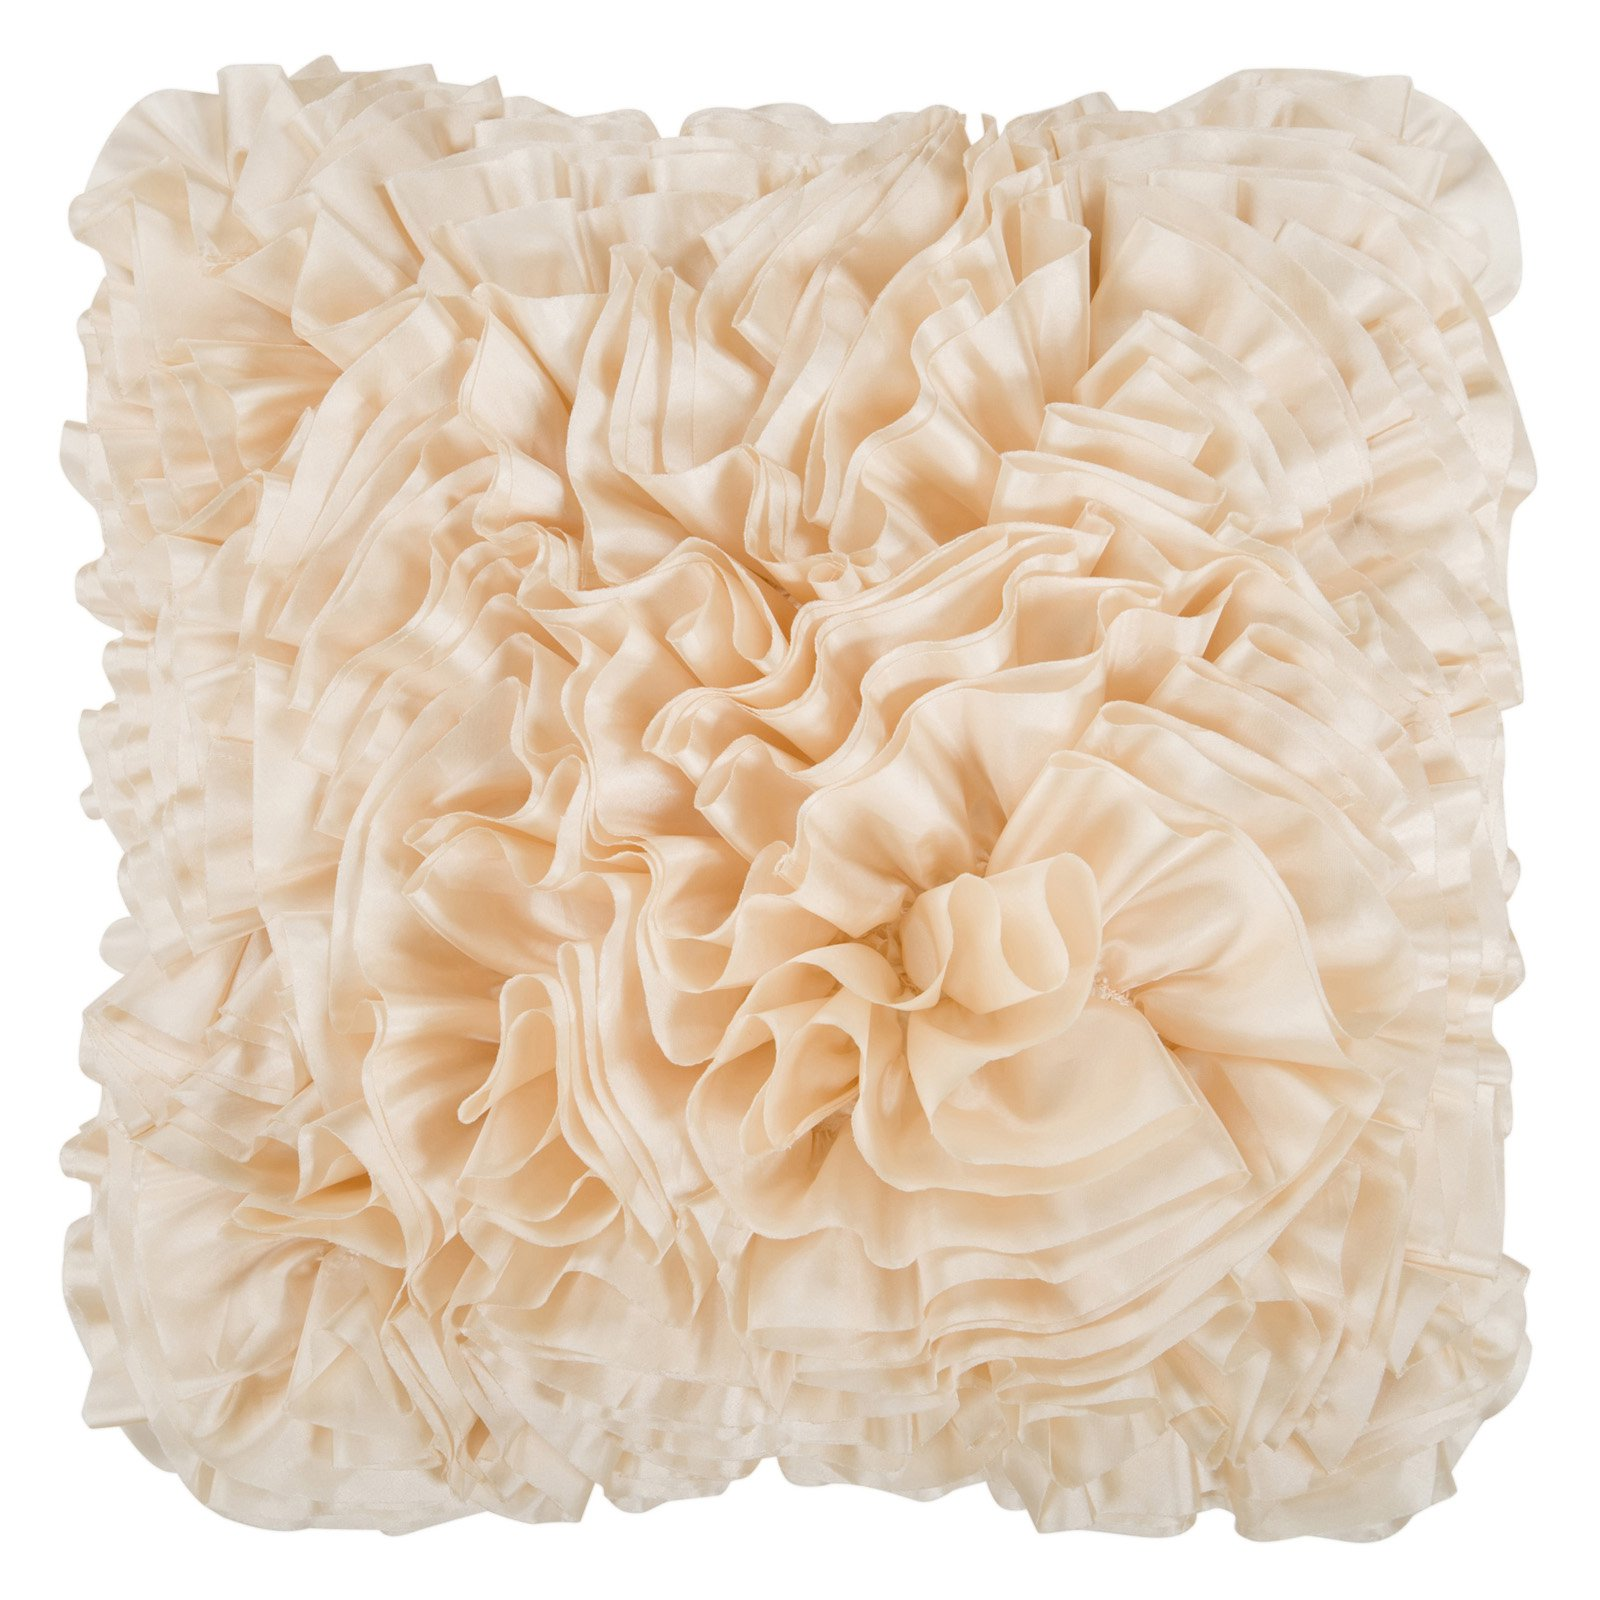 Surya Ruffles Decorative Pillow - Ivory